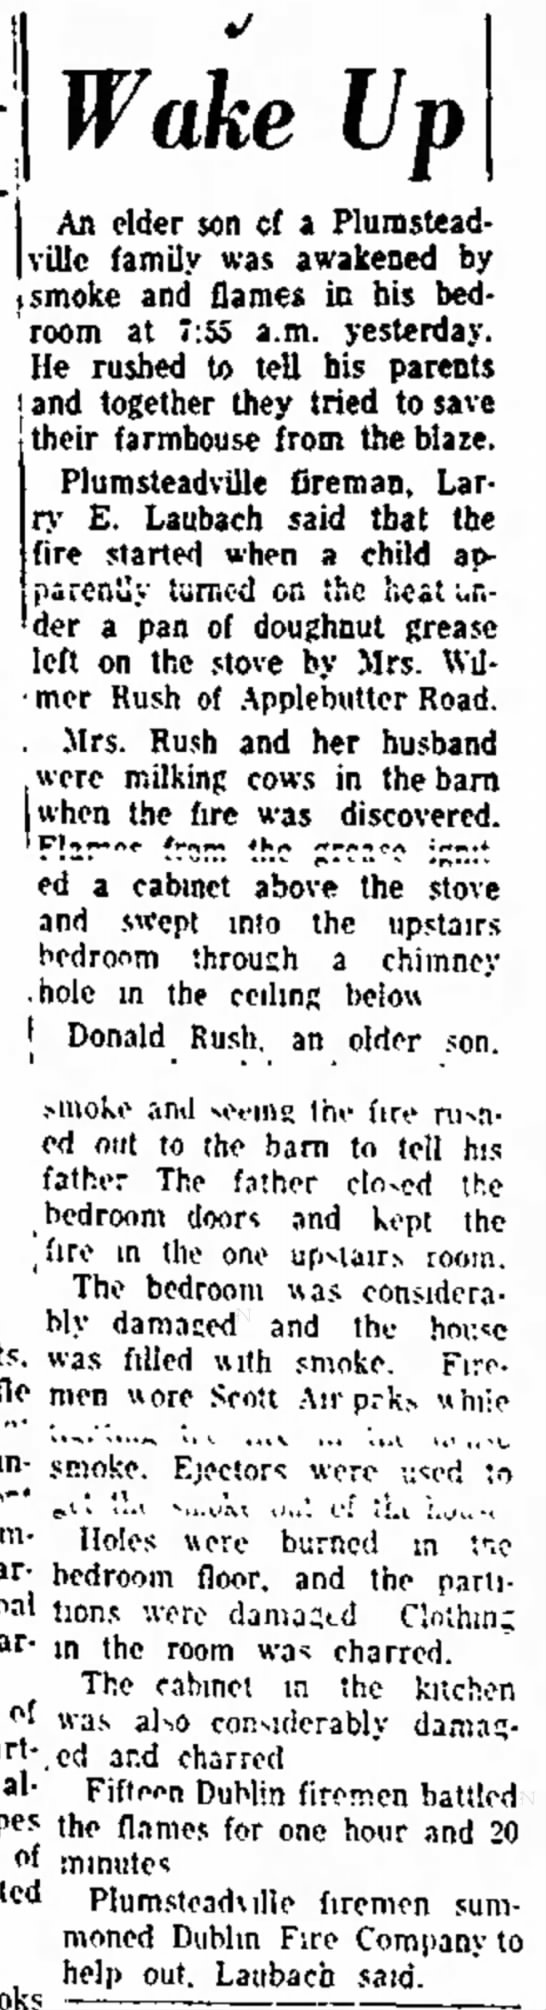 M/M Wilmer Rush - fire at house 